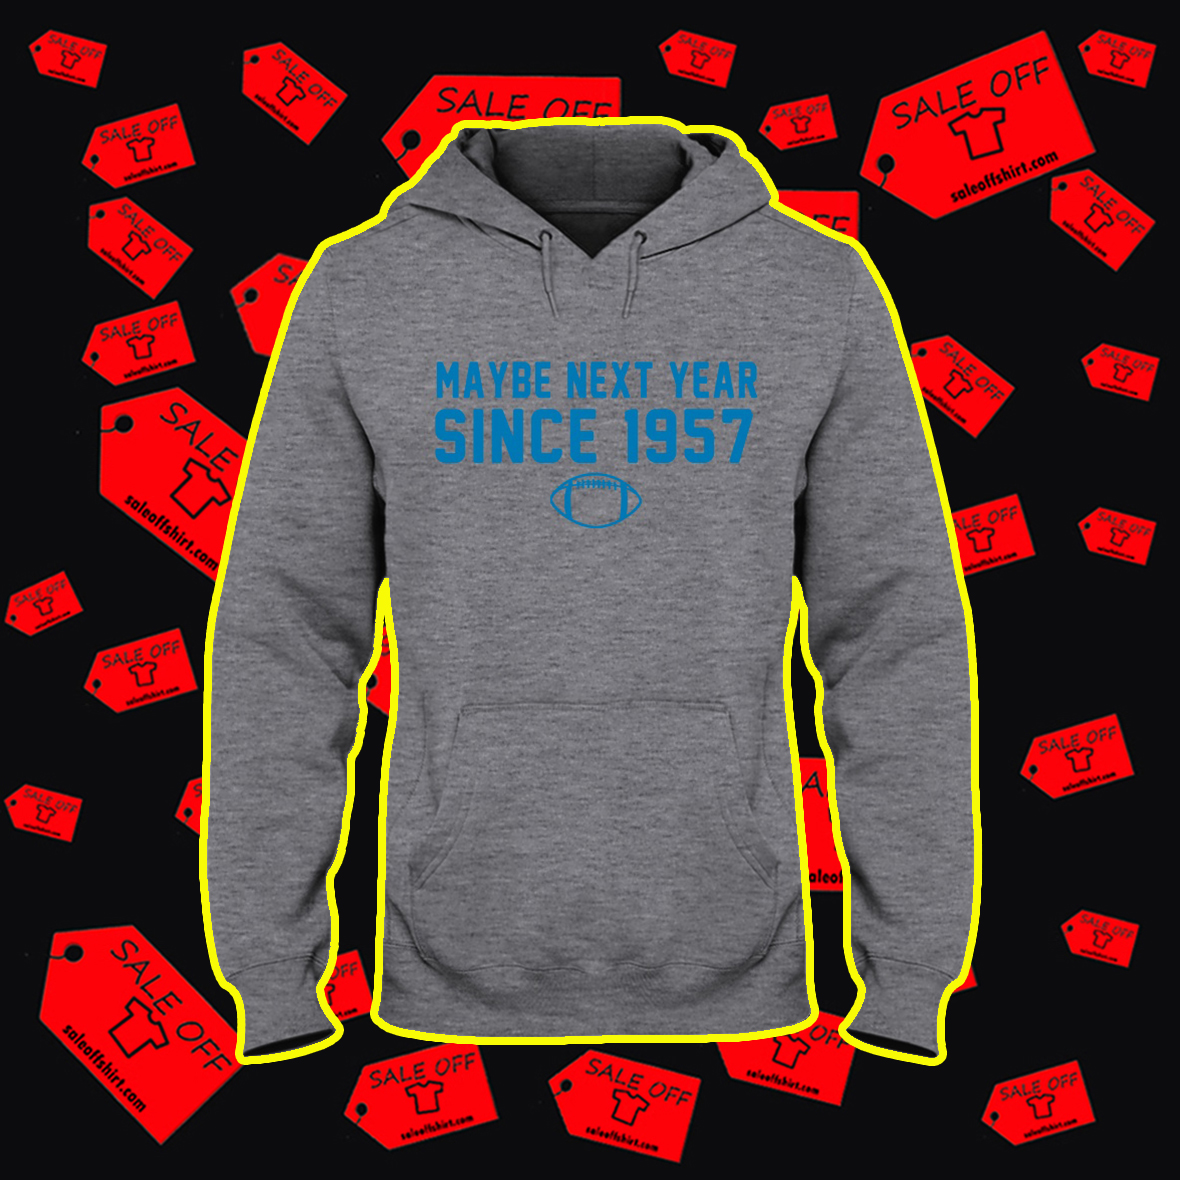 Maybe Next Year Since 1957 Football hoodie